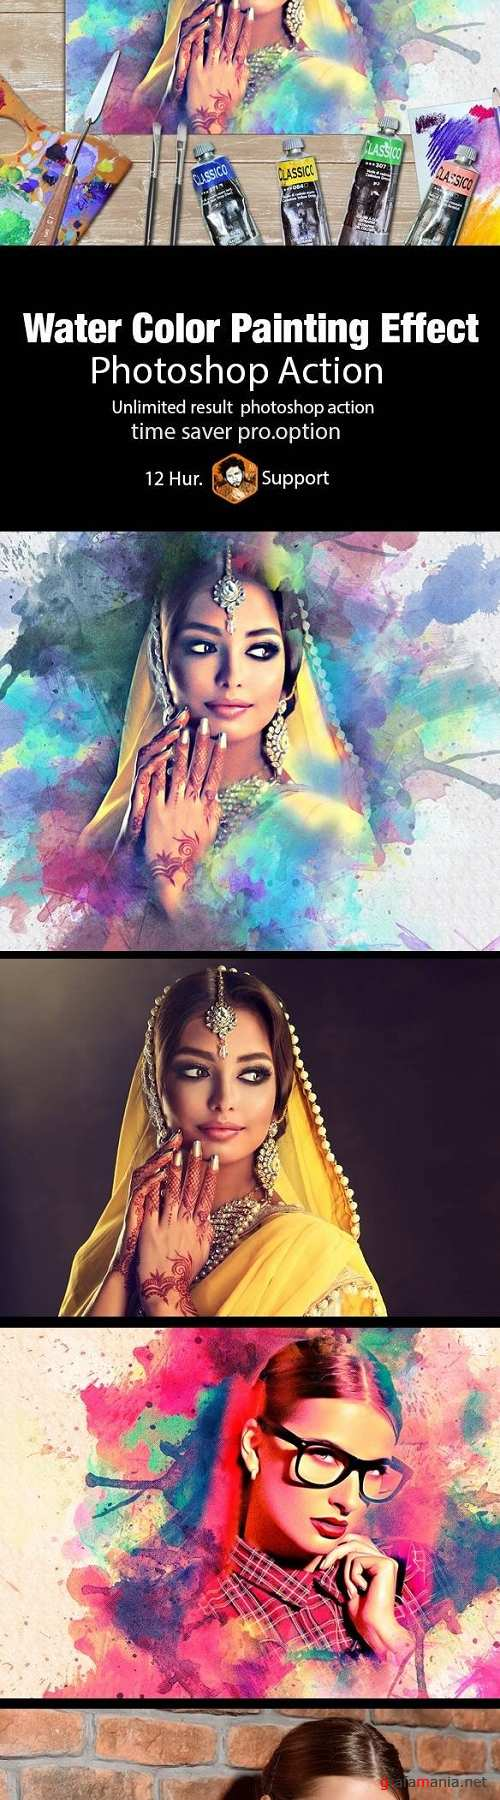 Water Color Painting Effect 20413874